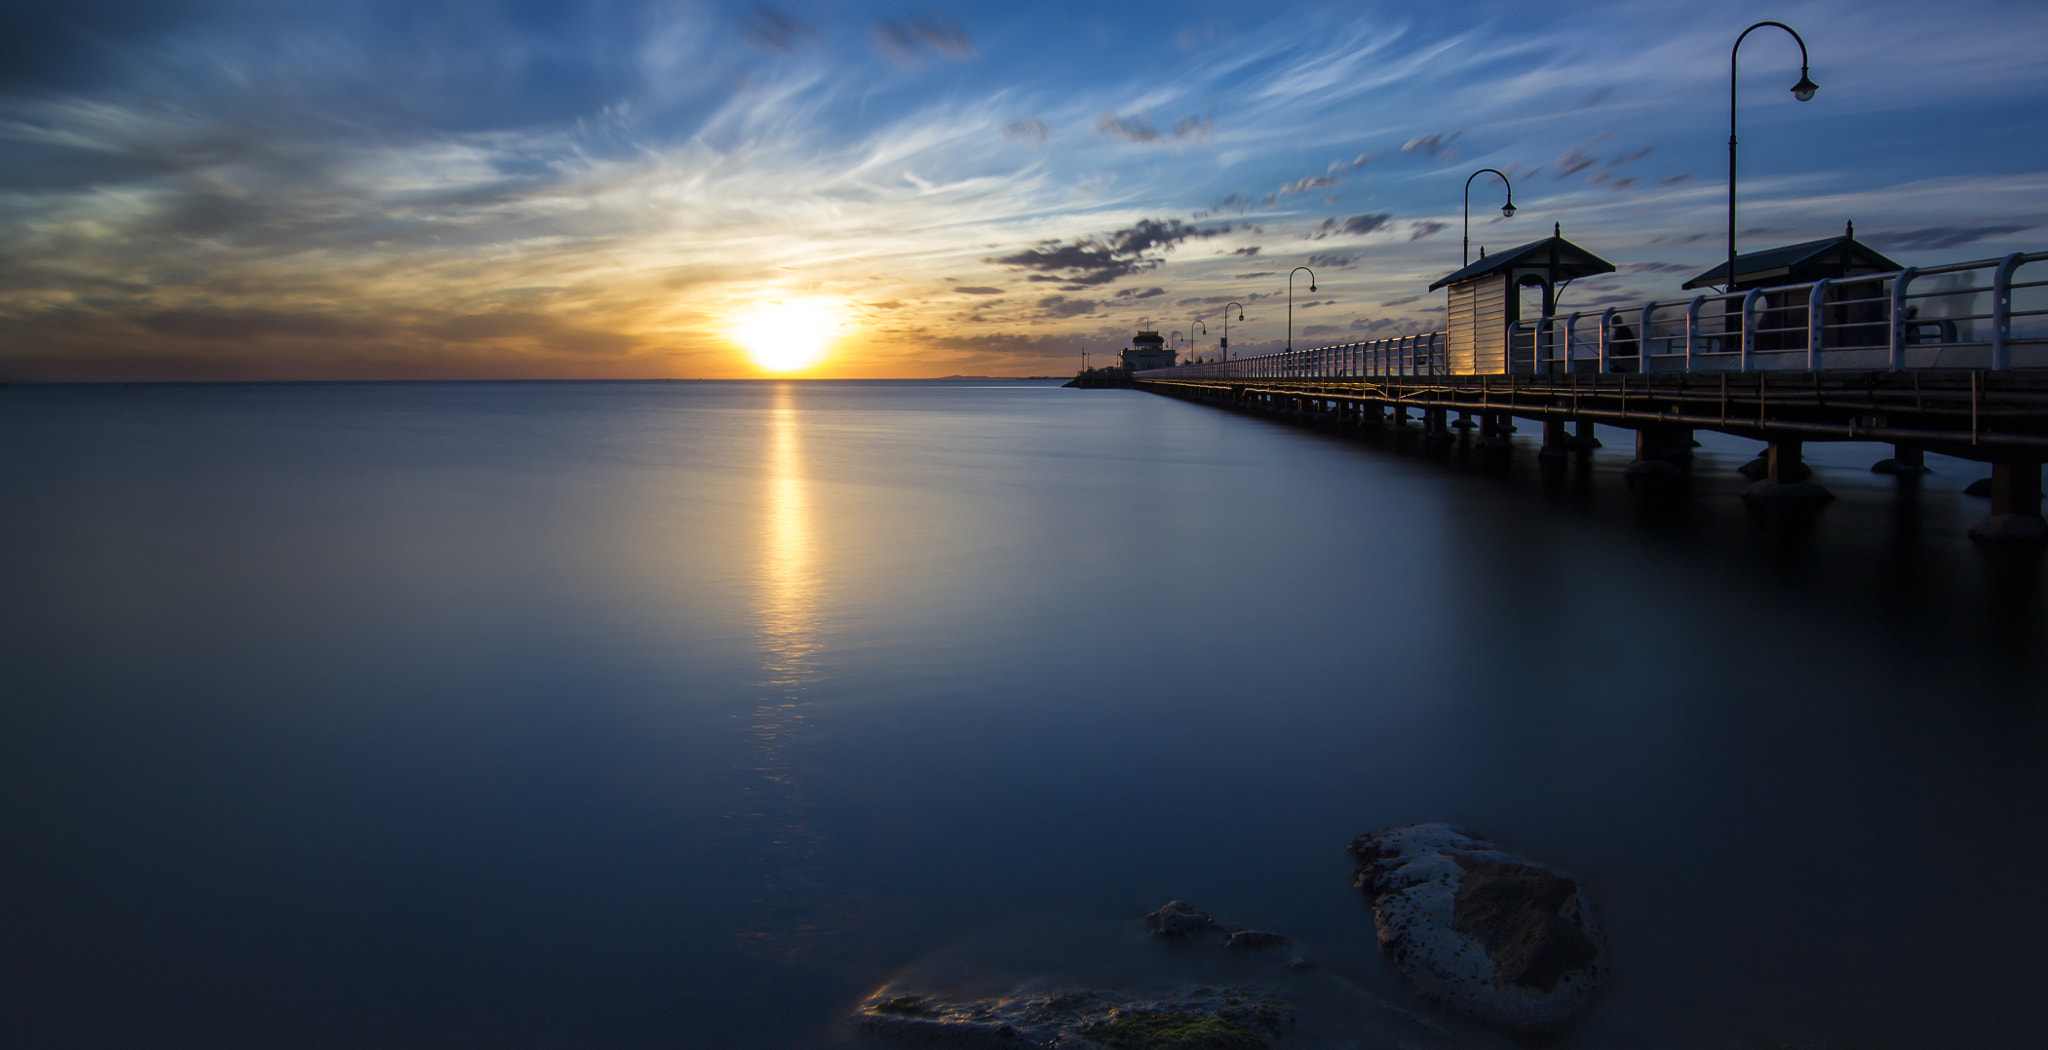 Photograph Summer at the Pier by Gavin Queit on 500px